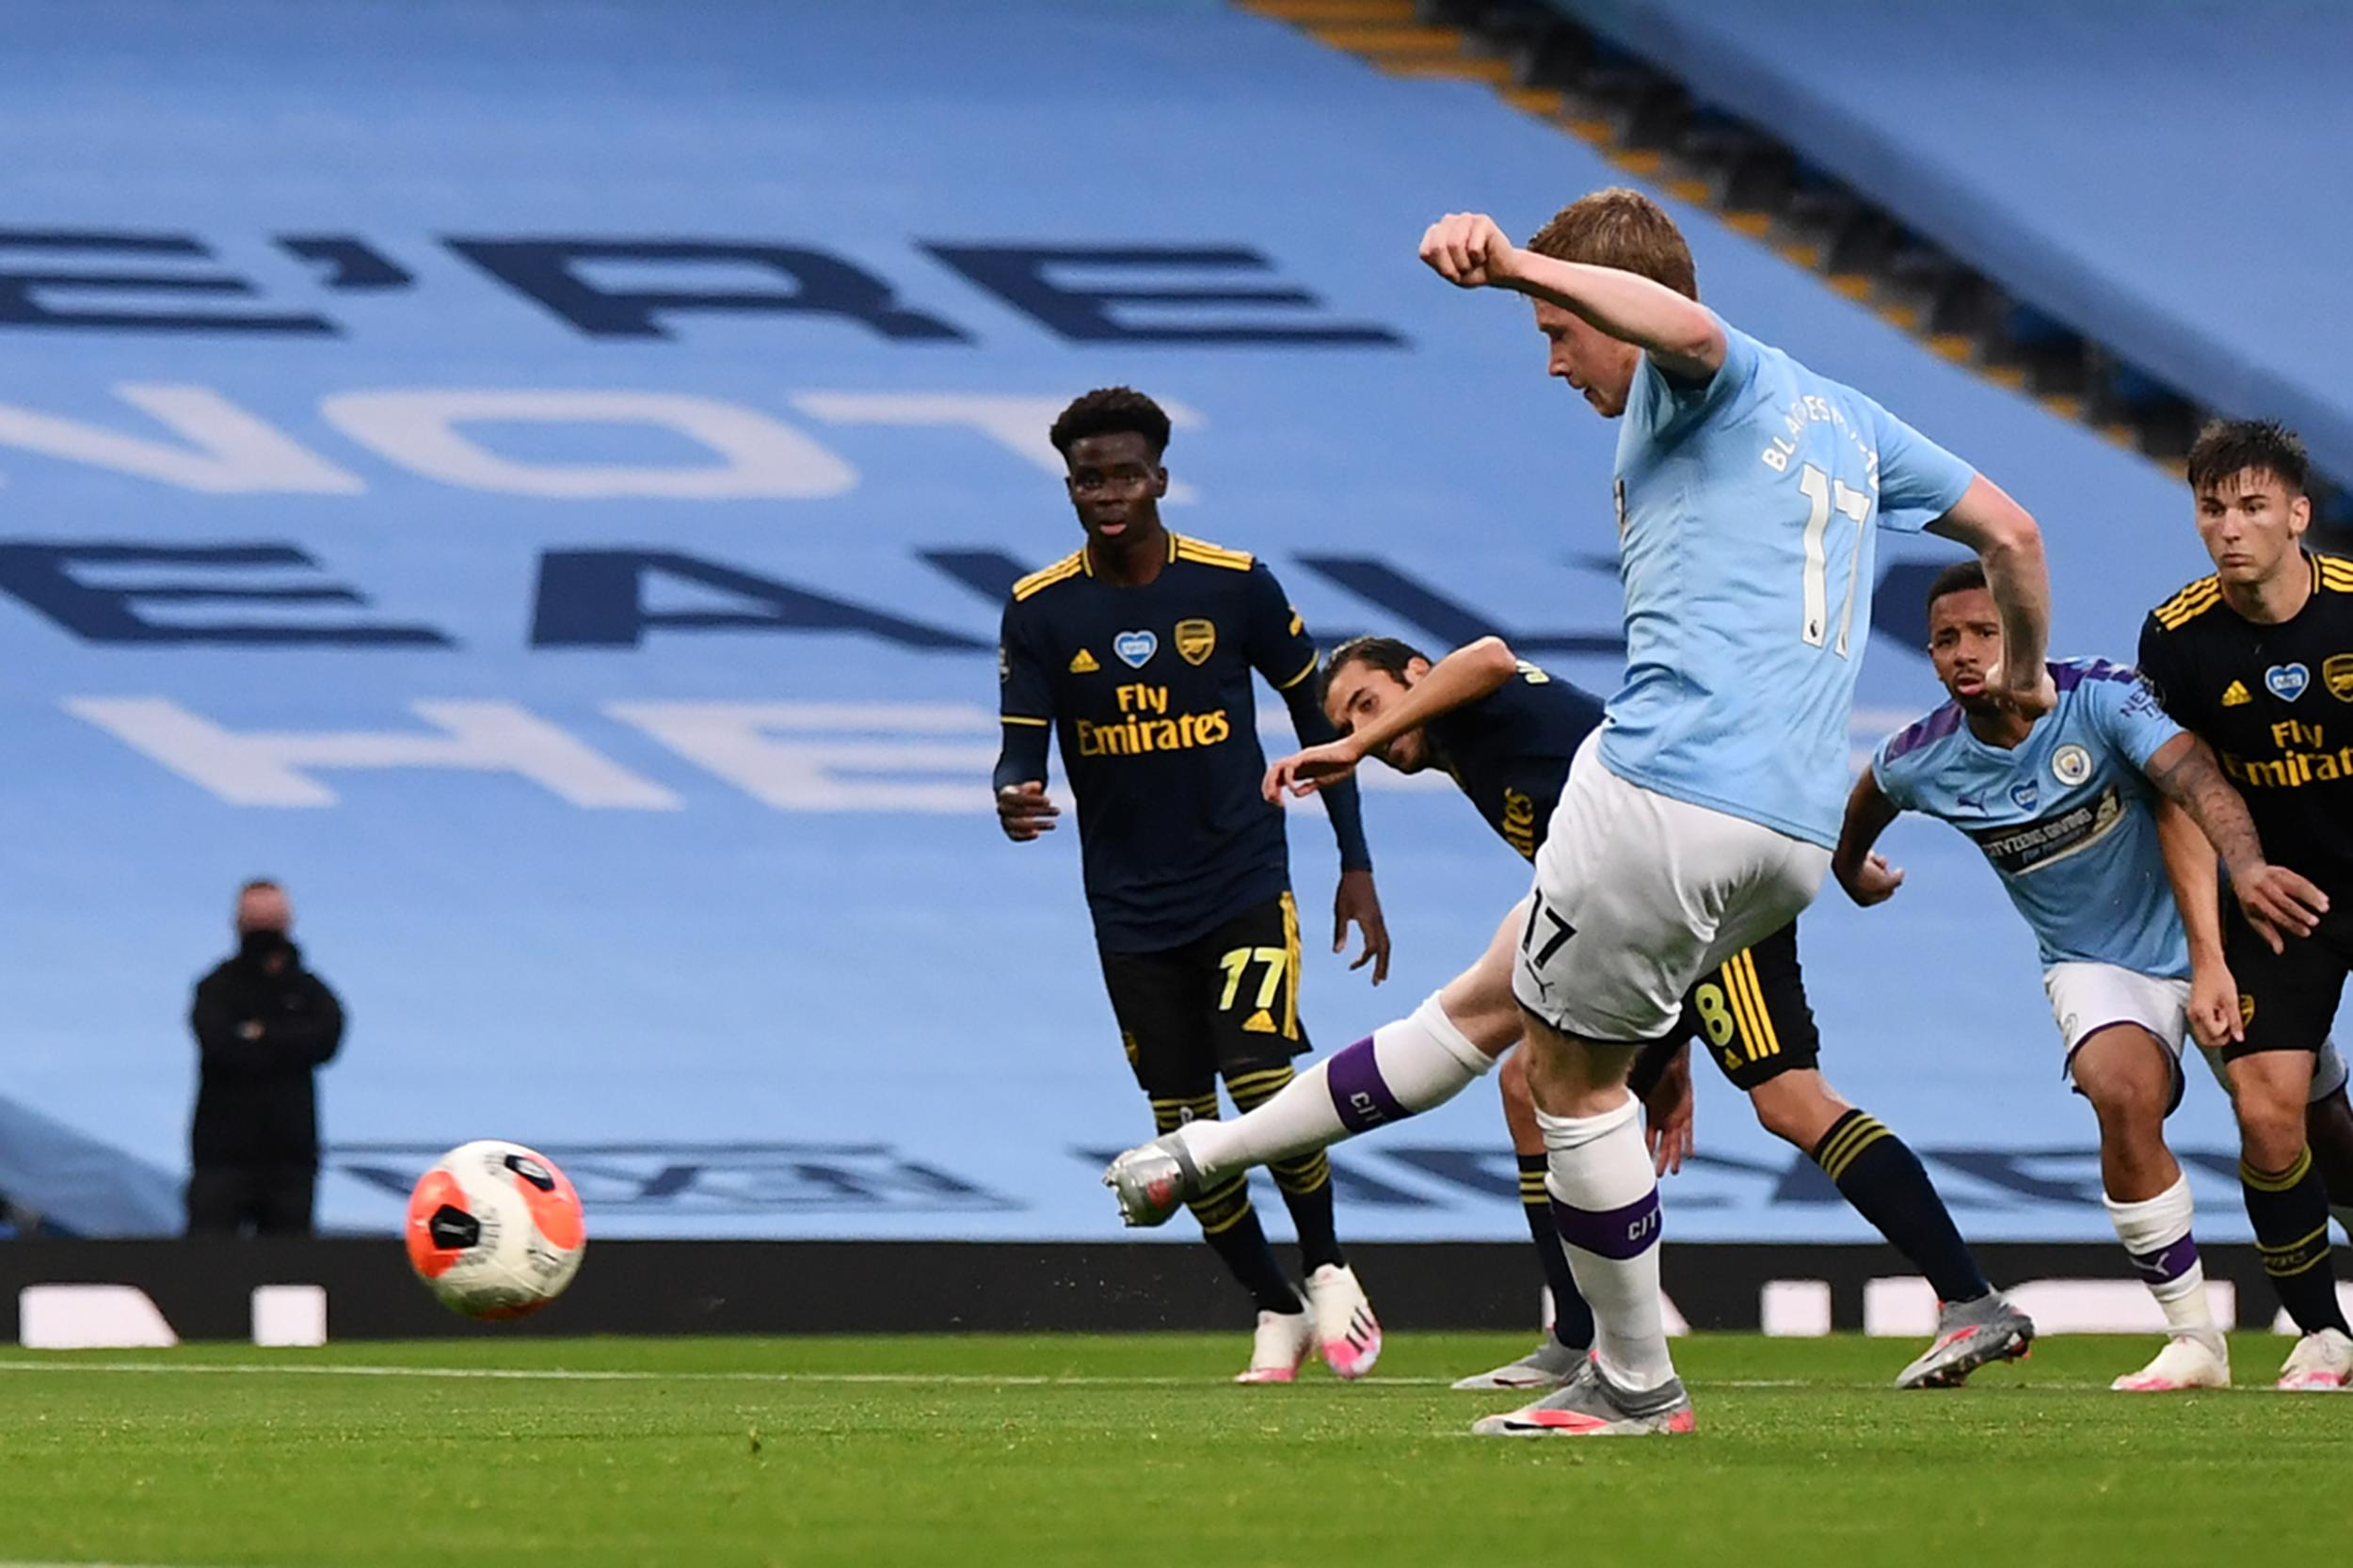 City to cruise past Arsenal